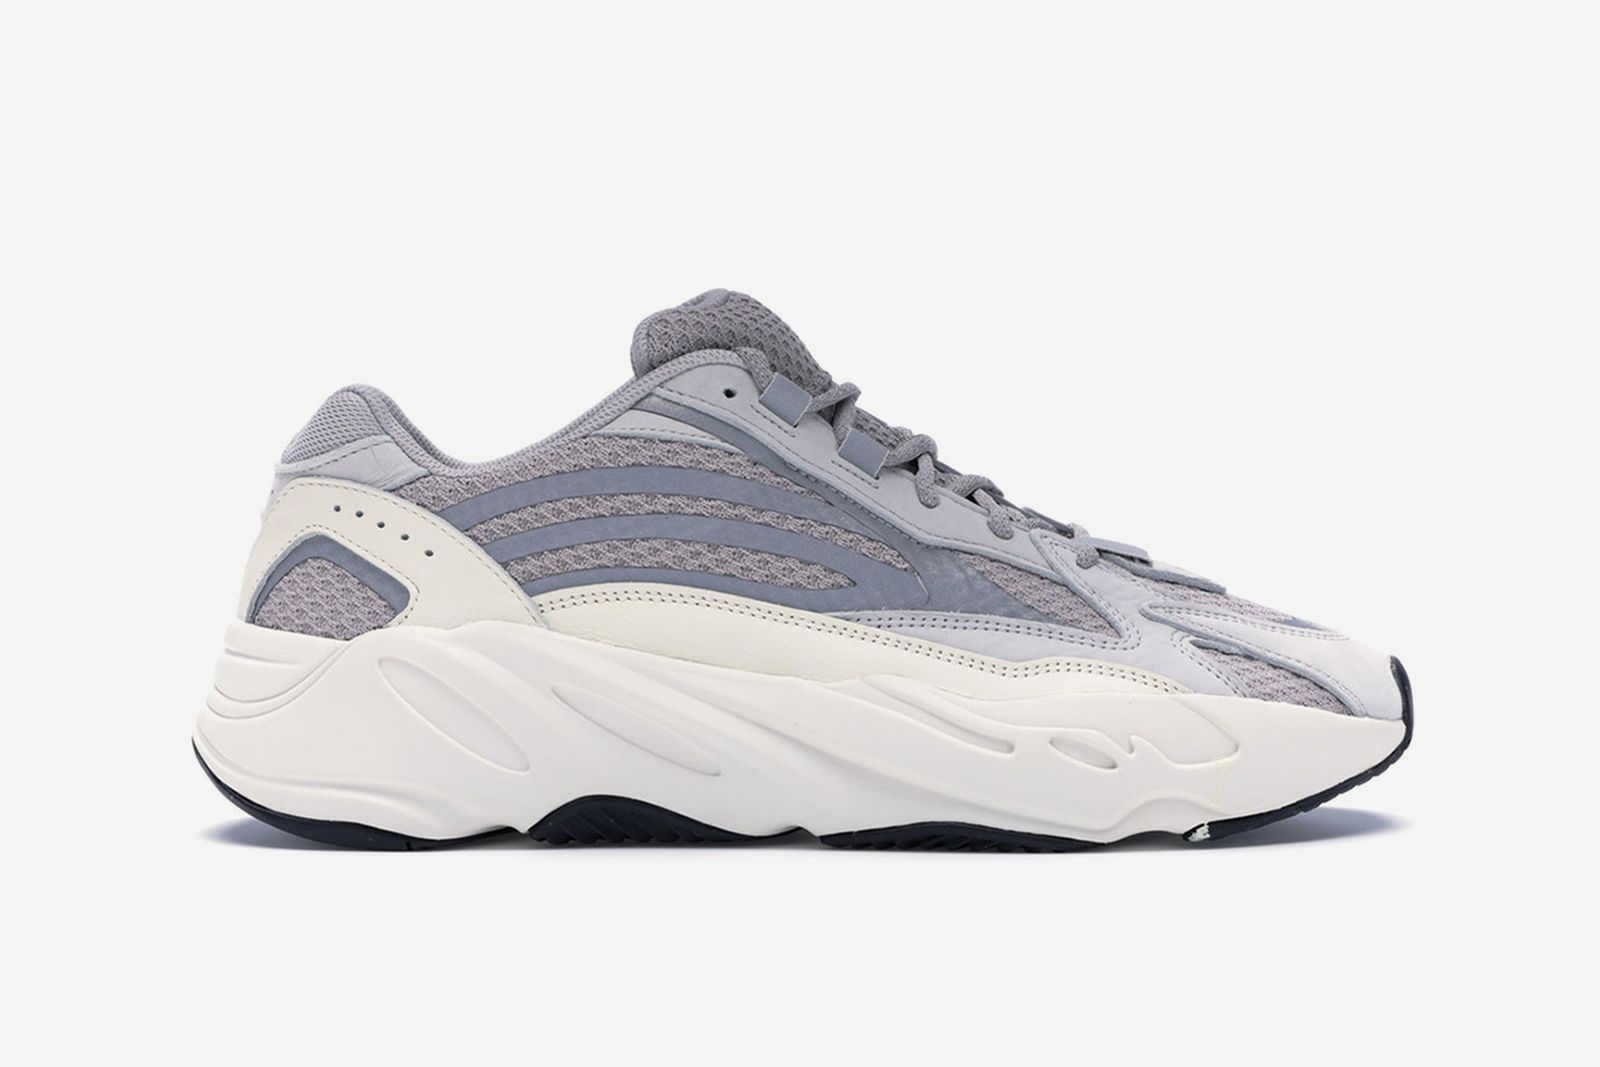 adidas yeezy guide 38 adidas YEEZY Boost 700 V2 Static Non Reflective Grailed StockX adidas Originals